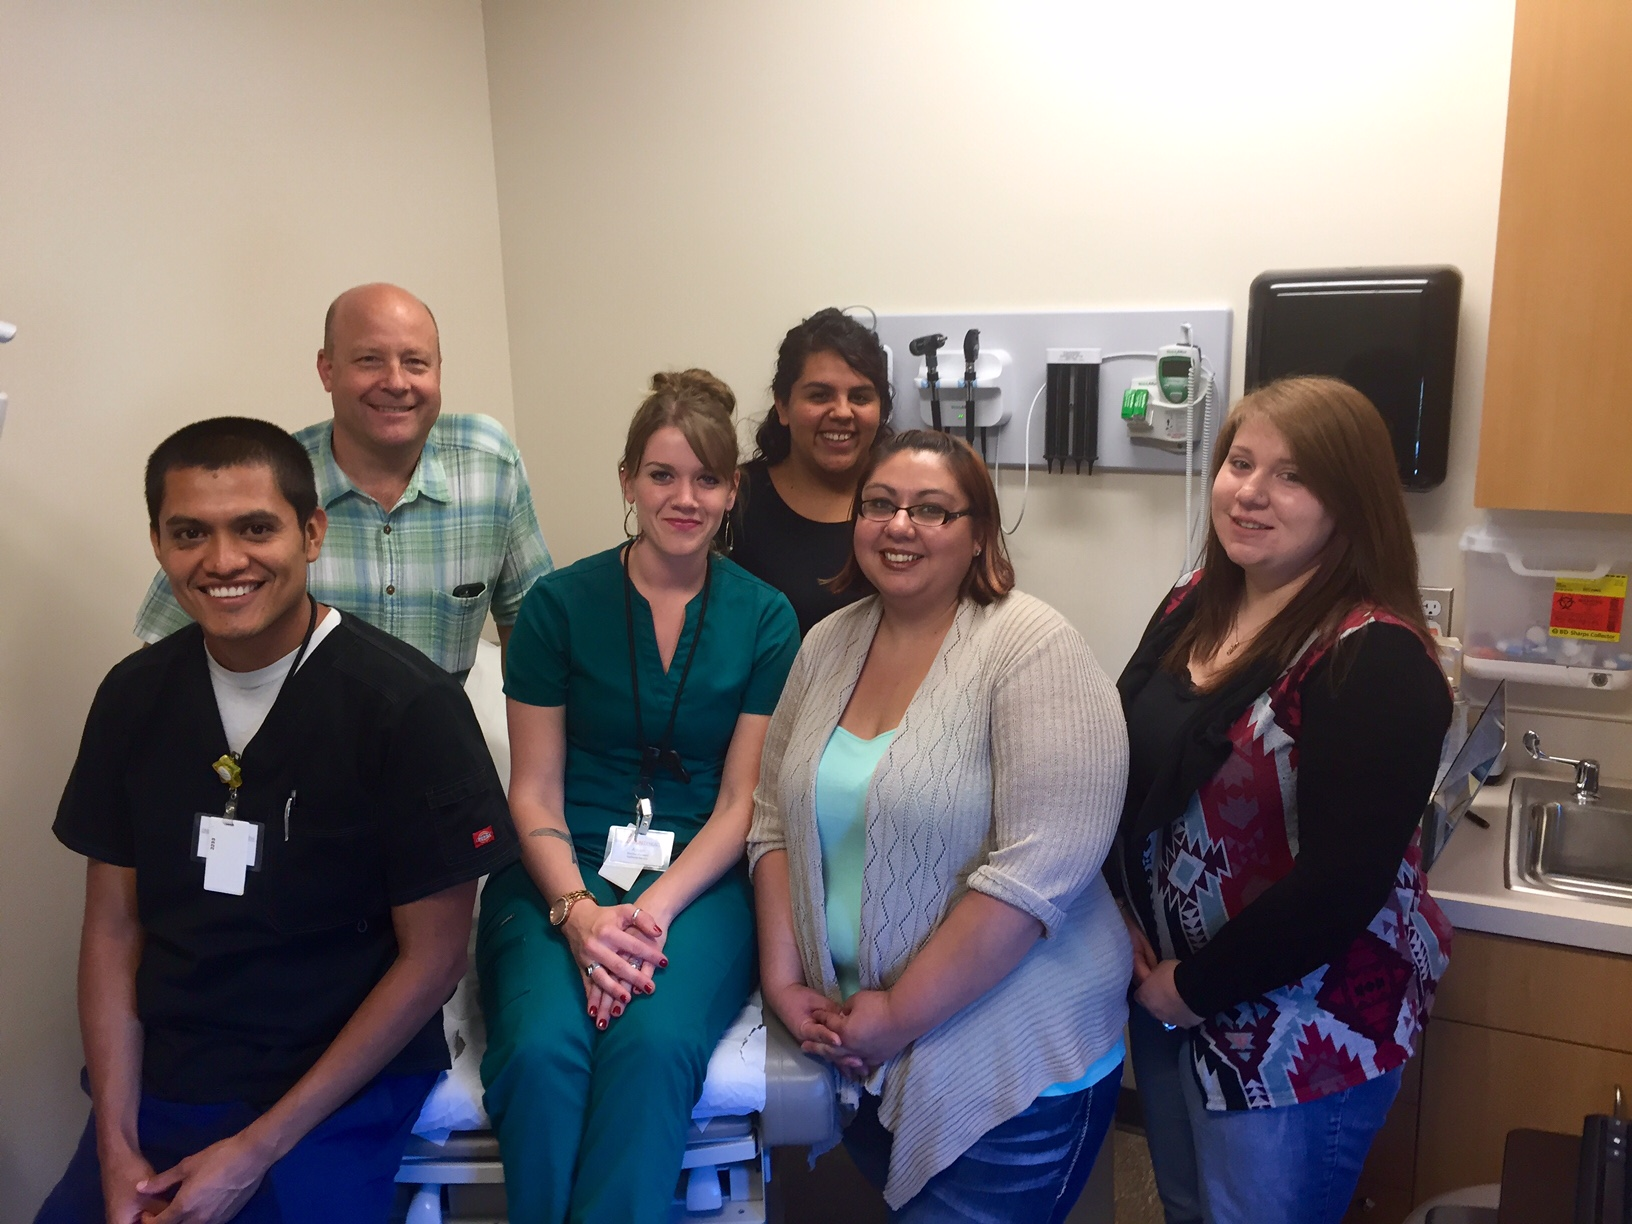 Pictured here are the staff members who helped:Top row, left to right: Art Ticknor, MD (has relocated out of state since this event) and Maria Acevedo, CHW; bottom row, left to right: Nelson Hernandez-Rosales, RN; Ashlyn Vissers, CMA; Maria Mendiola, Clinical Support Coordinator; Electra Curl, CMA and (not pictured) Danel Hoidal, CMA.